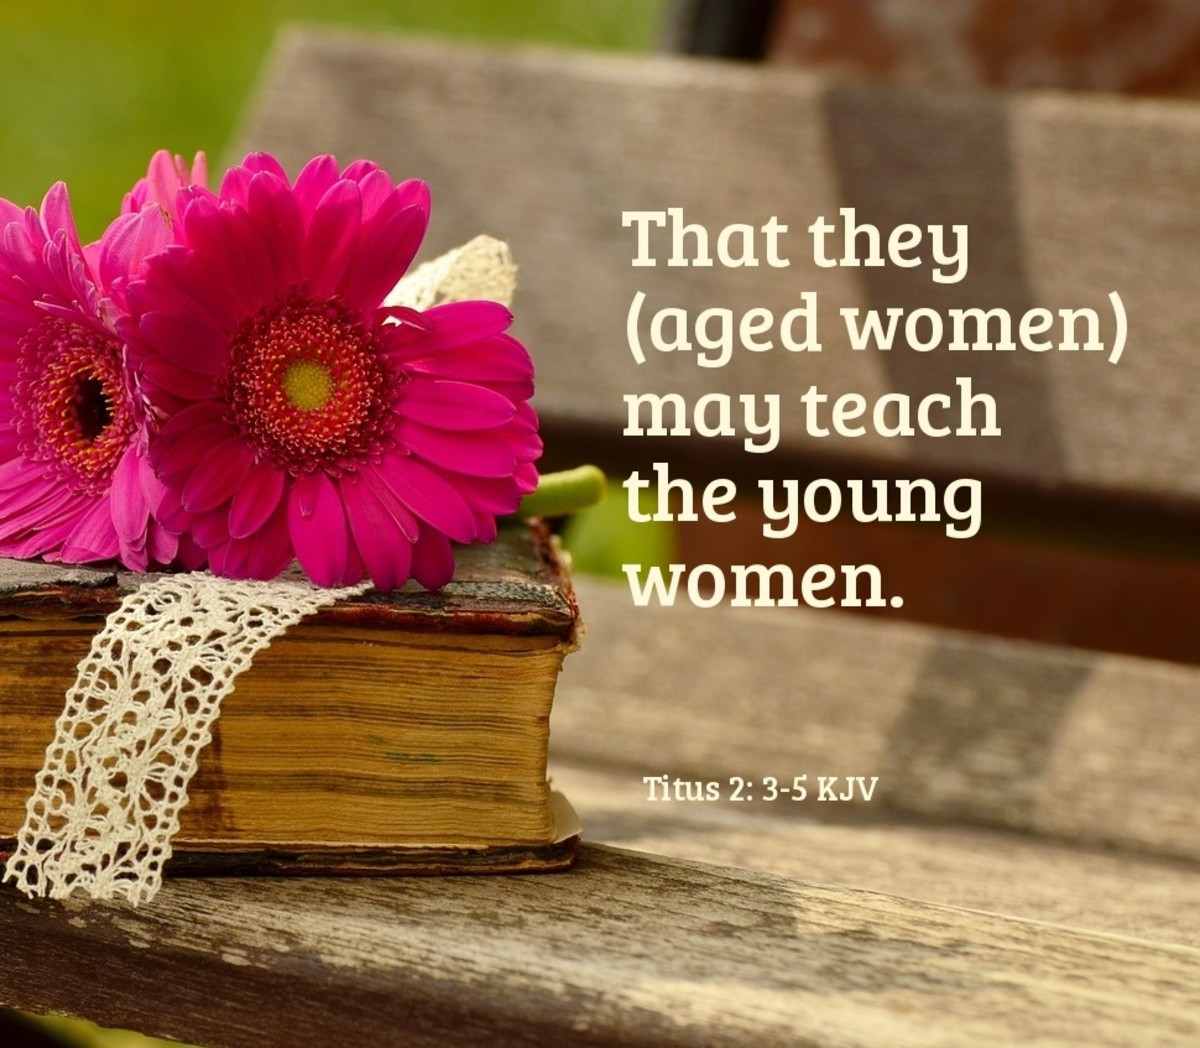 That they (aged women) may teach the young women. Titus 2: 3-5 KJV